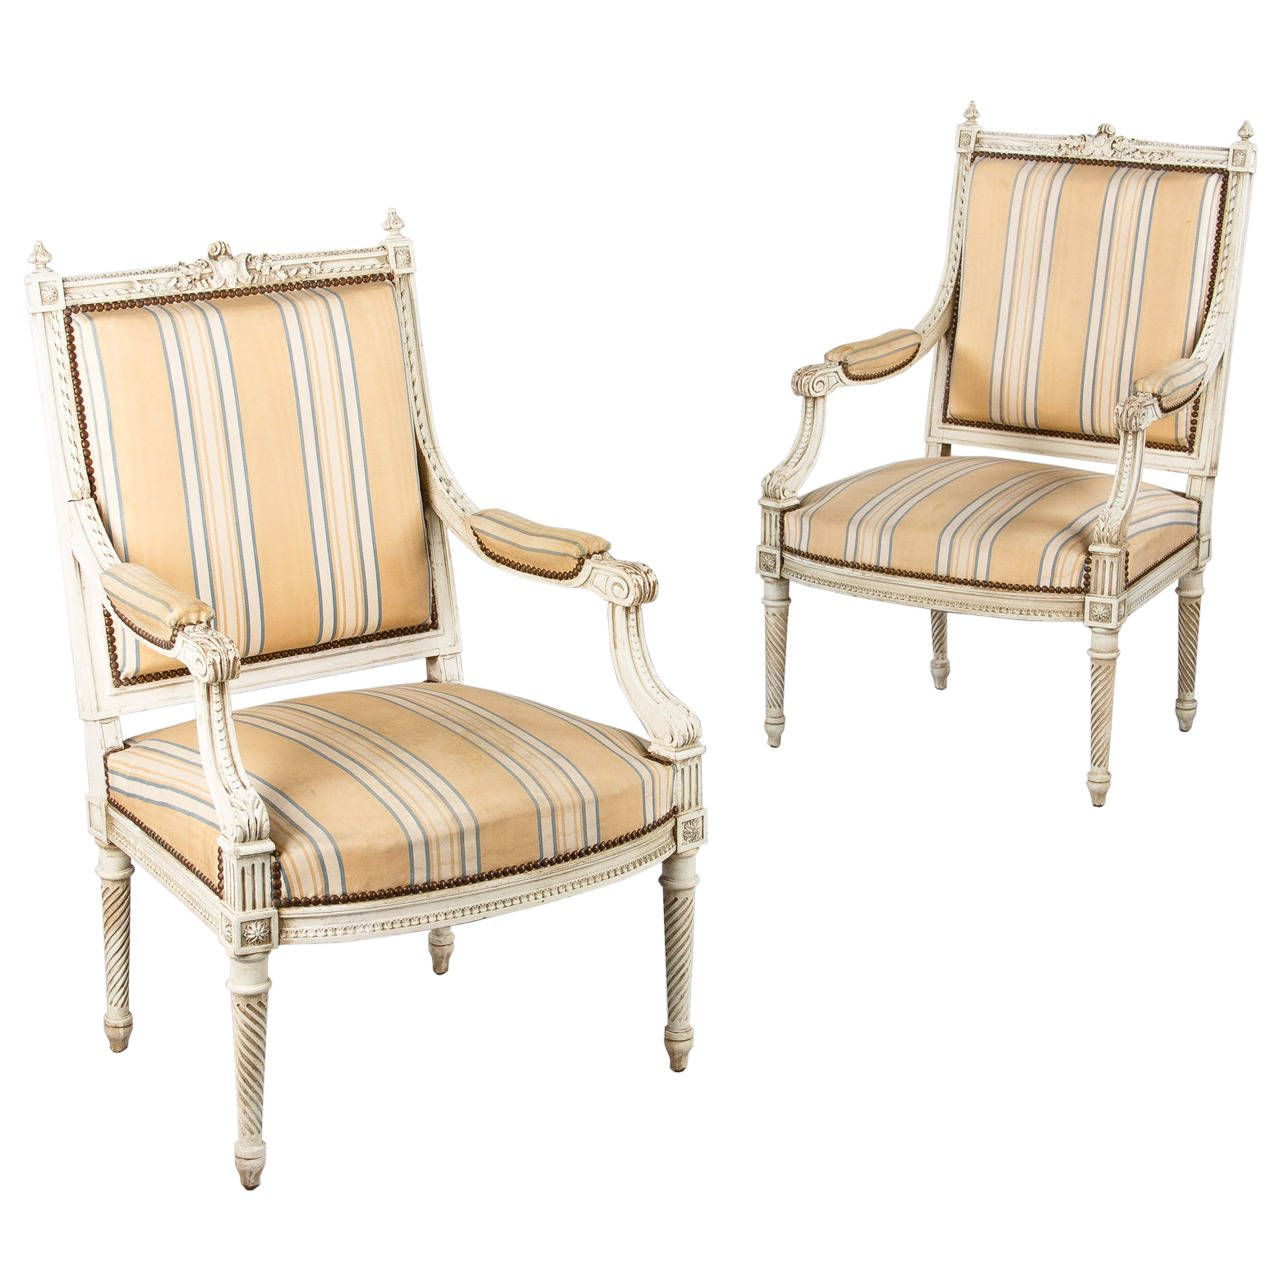 Pair of french louis xvi style painted armchairs early 1900s striped chairmodern